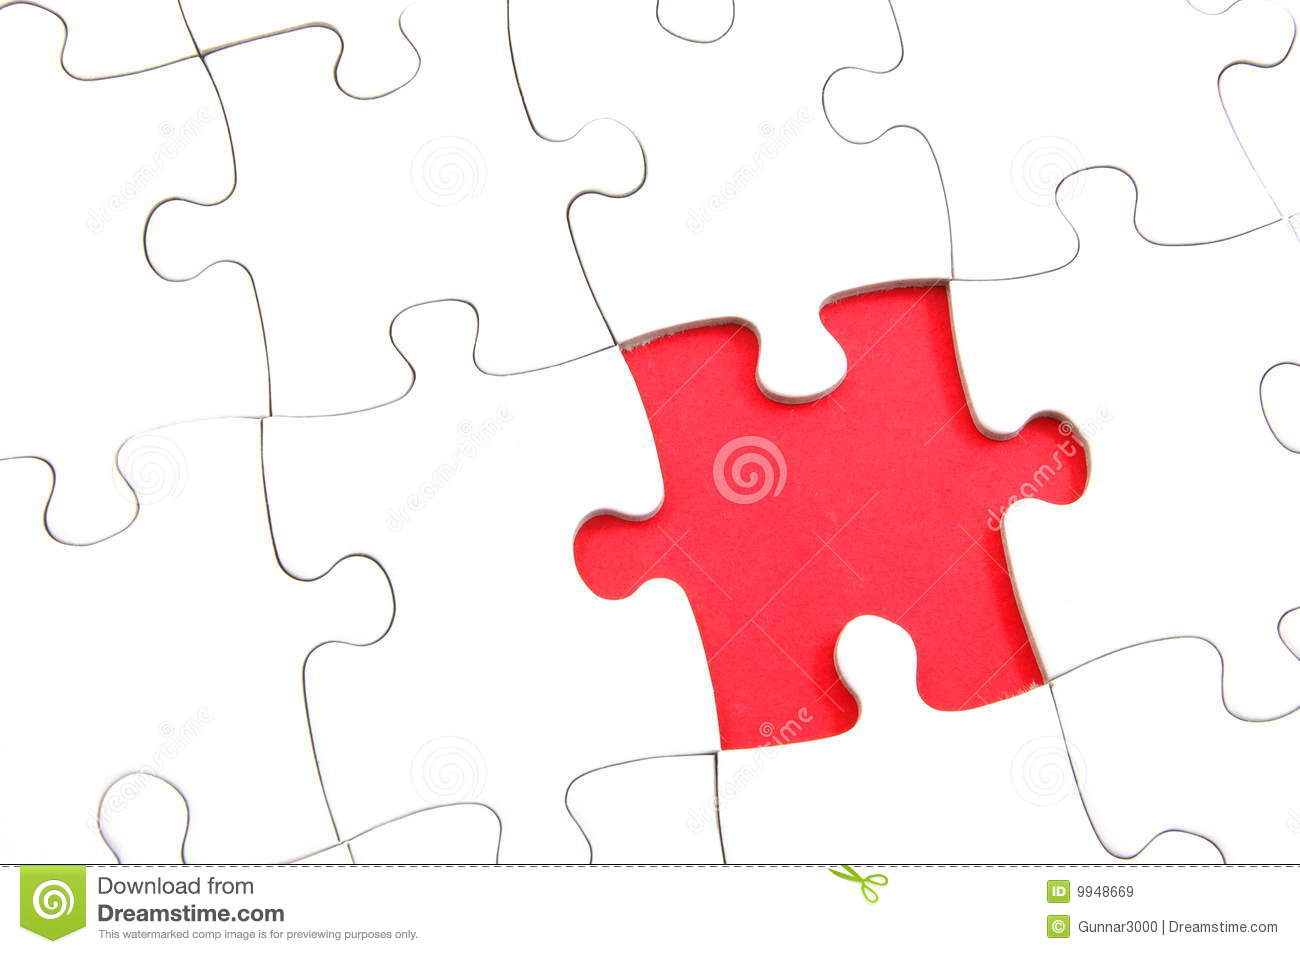 Abstract Jigsaw Puzzle Background Royalty Free Stock ...